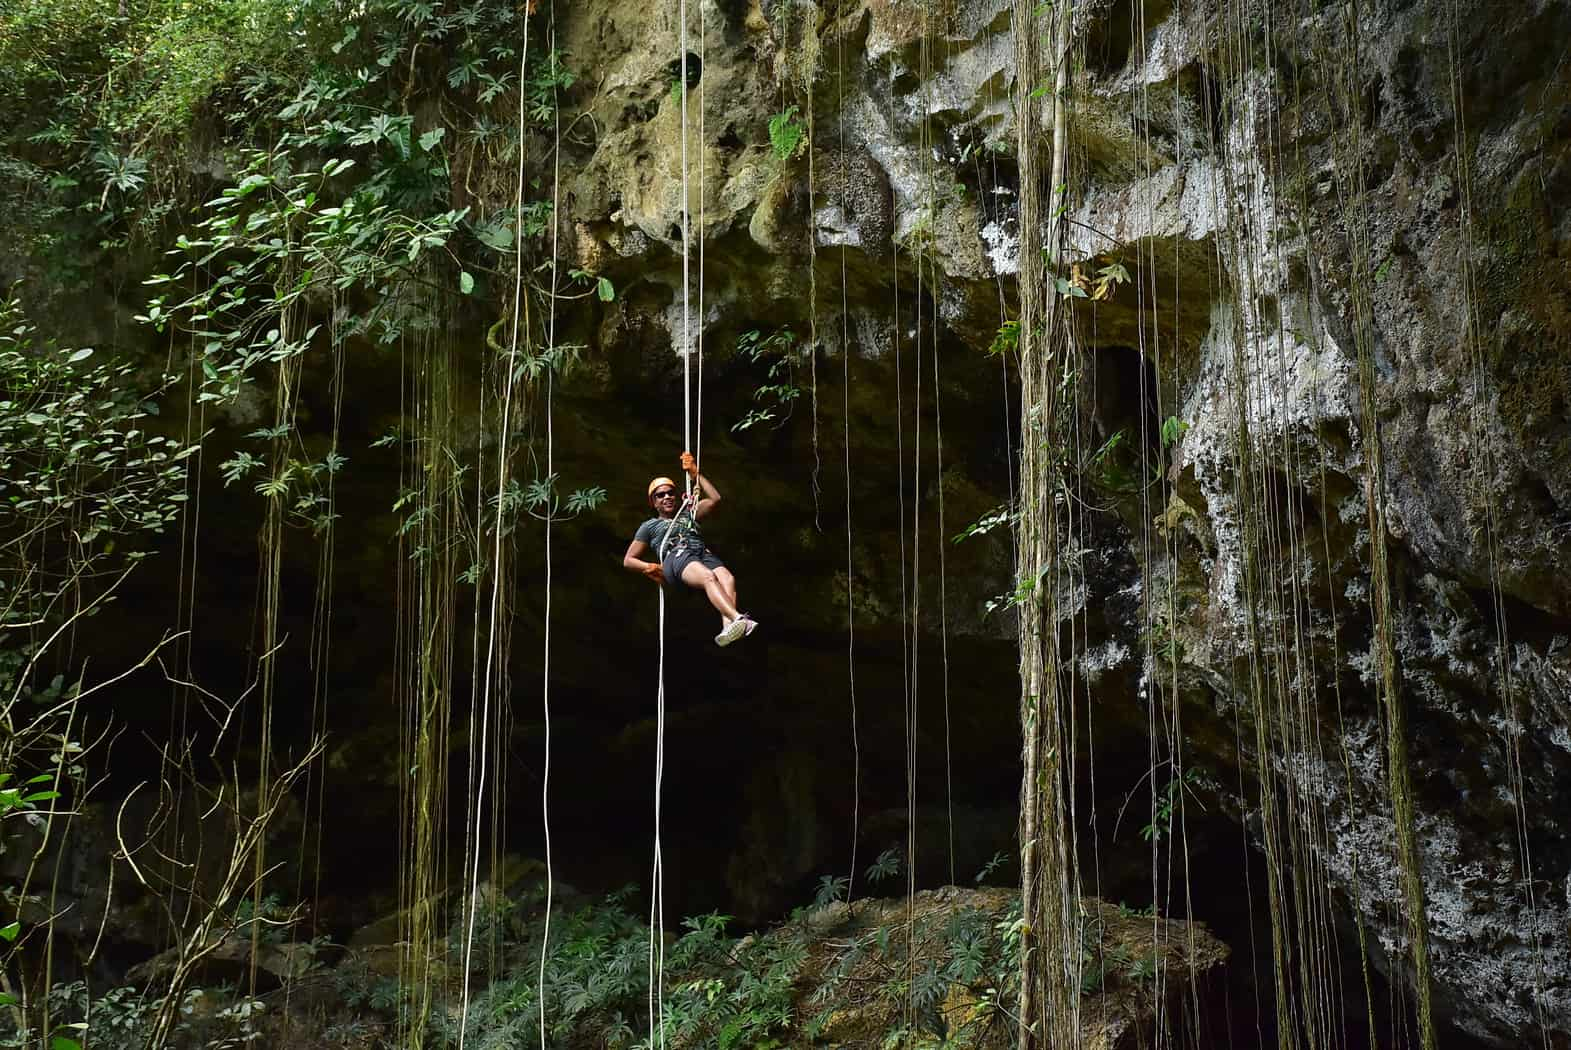 My Cornacopia rappelling with Alltournative